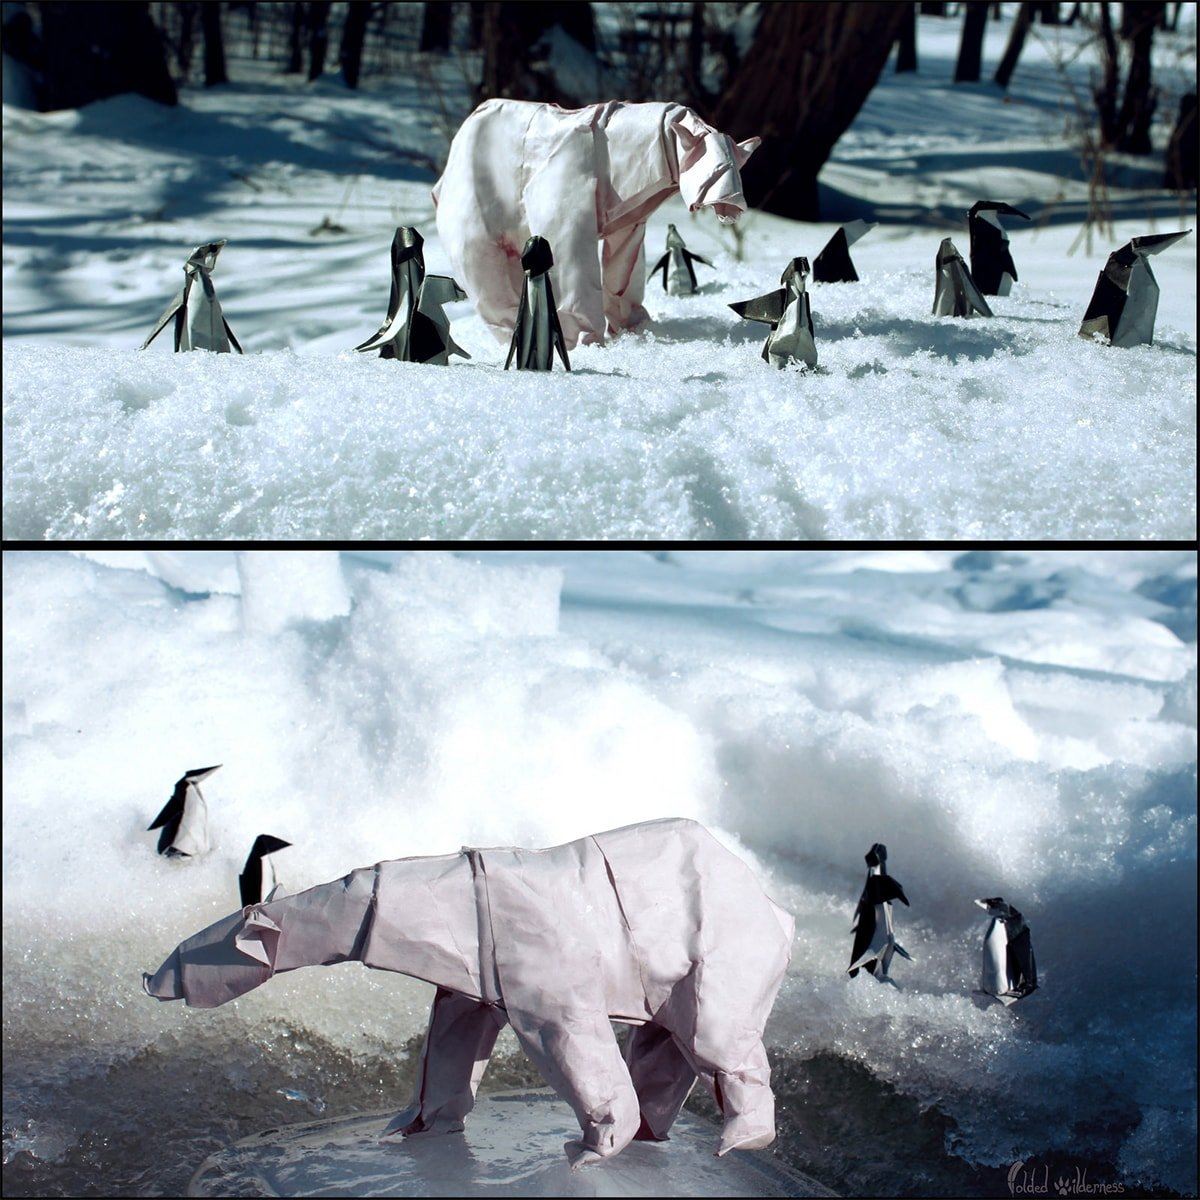 Papercraft Polar Bear and Penguins in the Wild